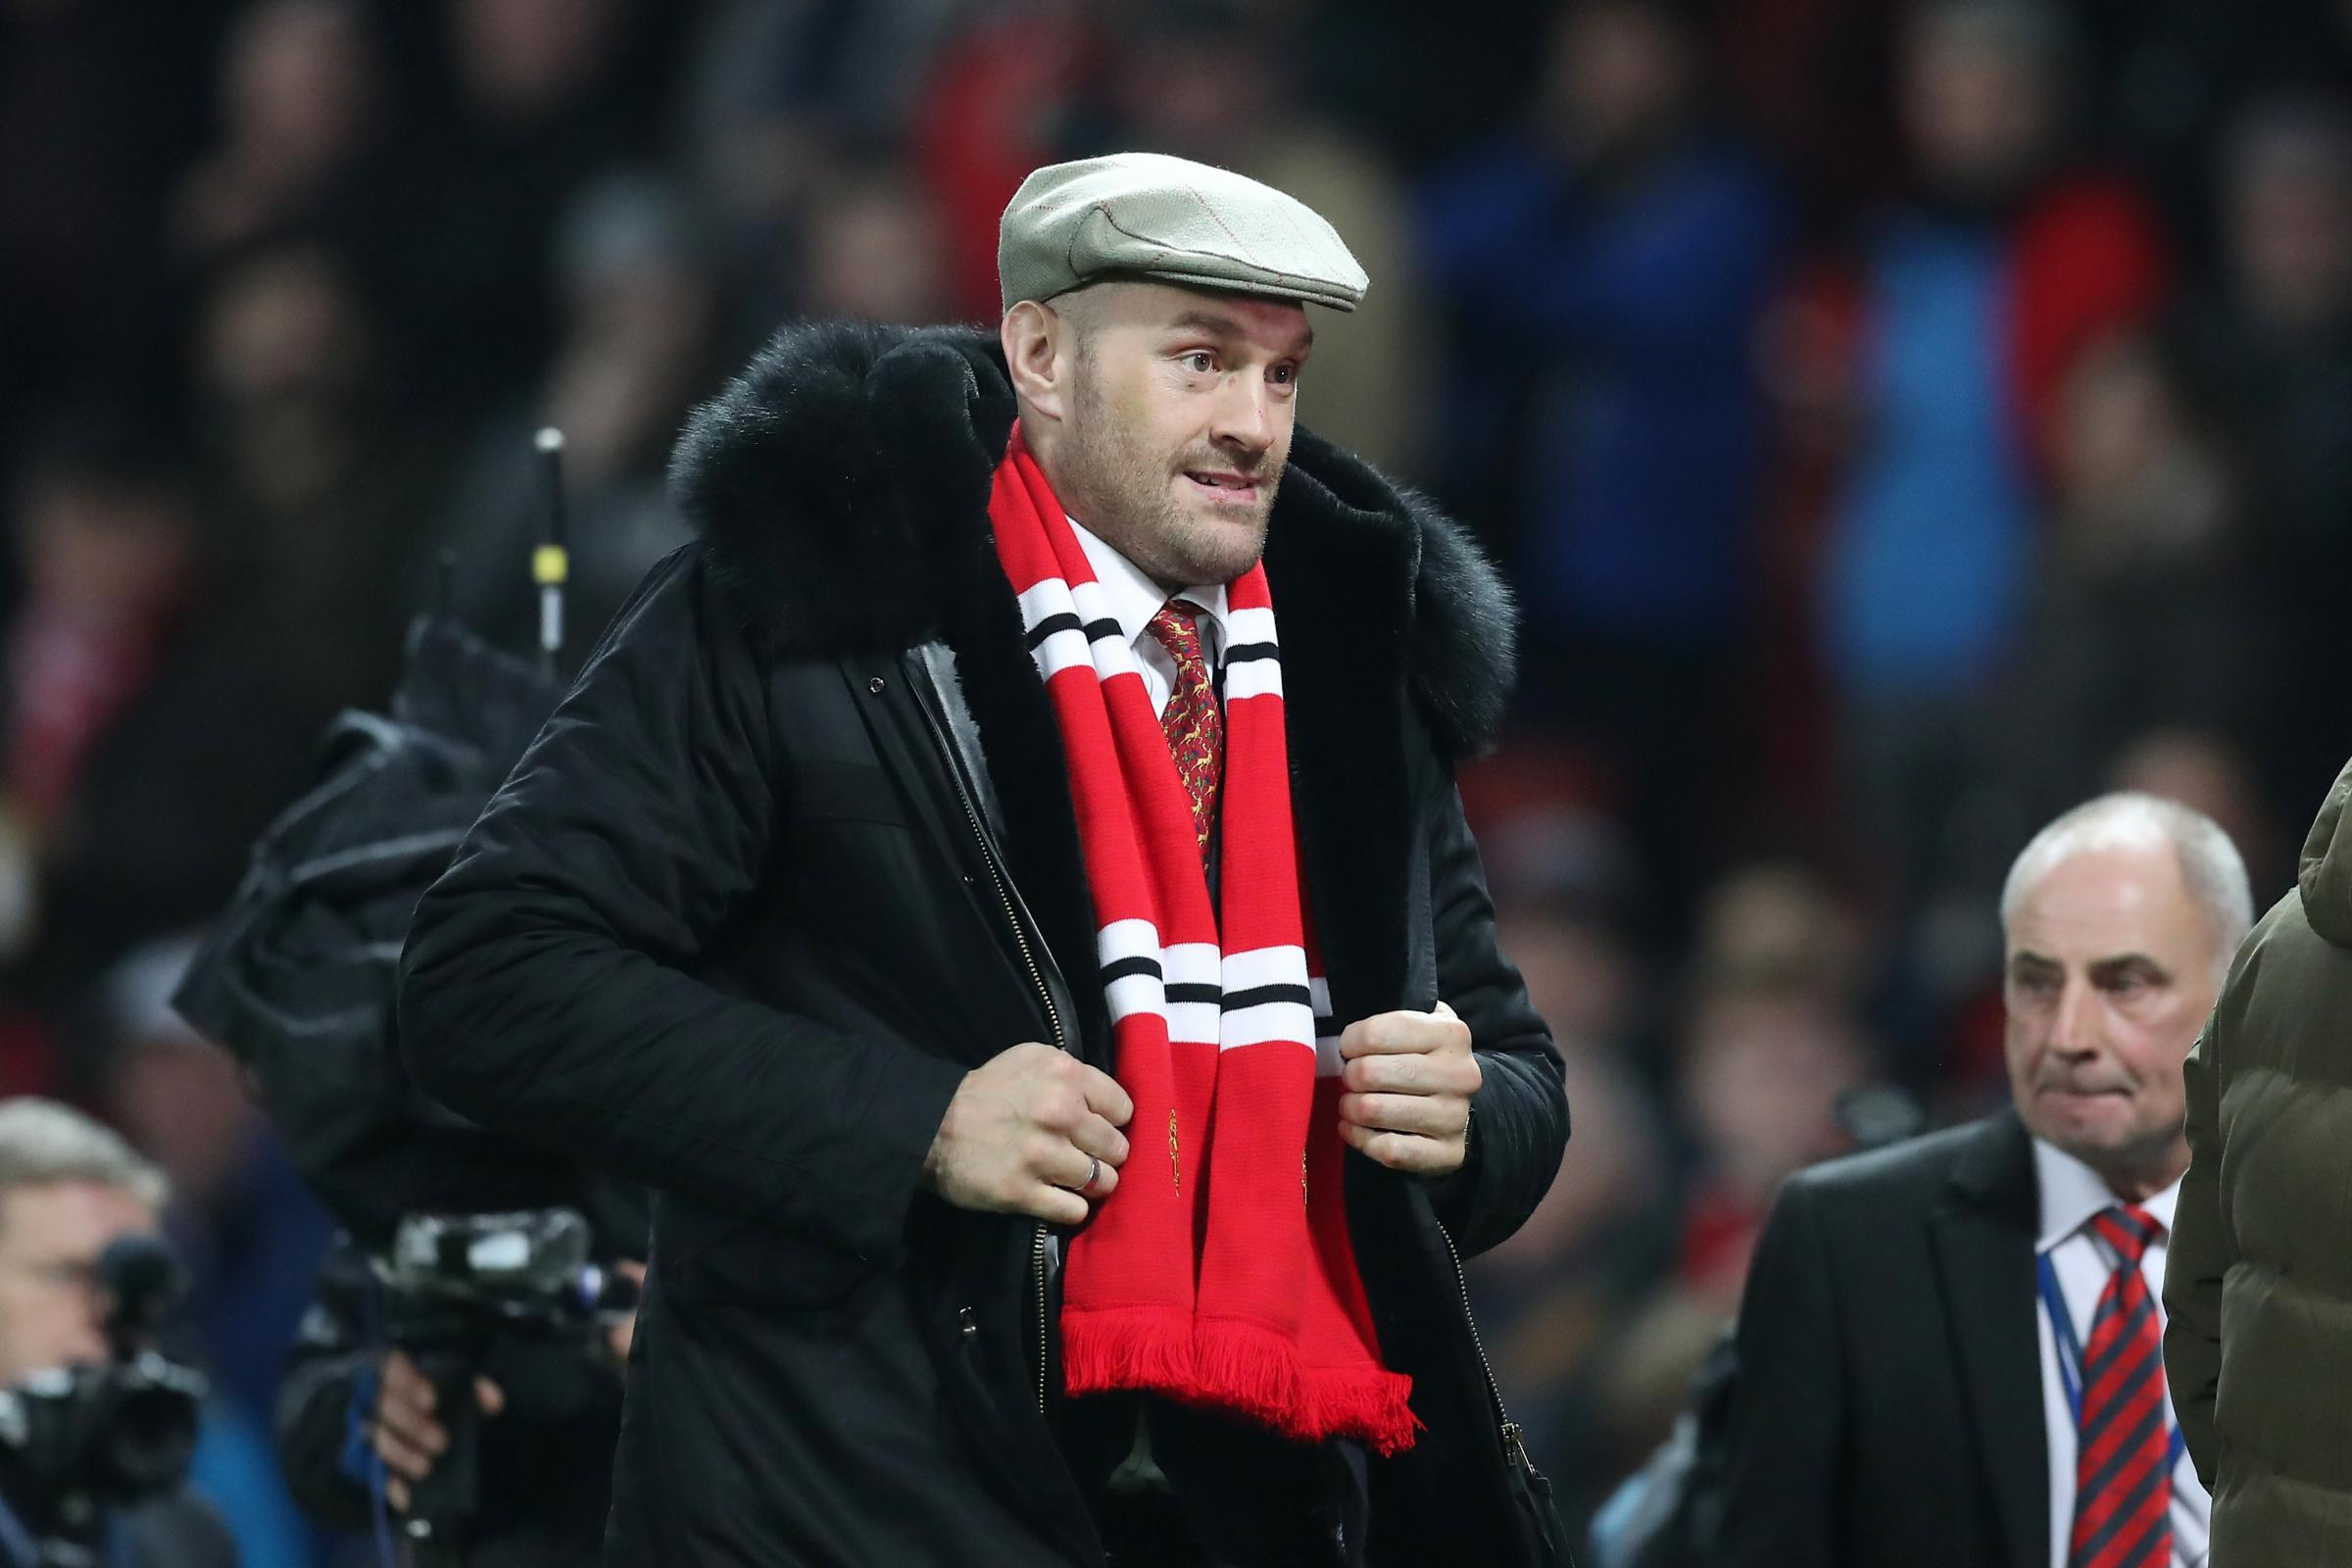 Tyson Fury was at Old Trafford on Wednesday